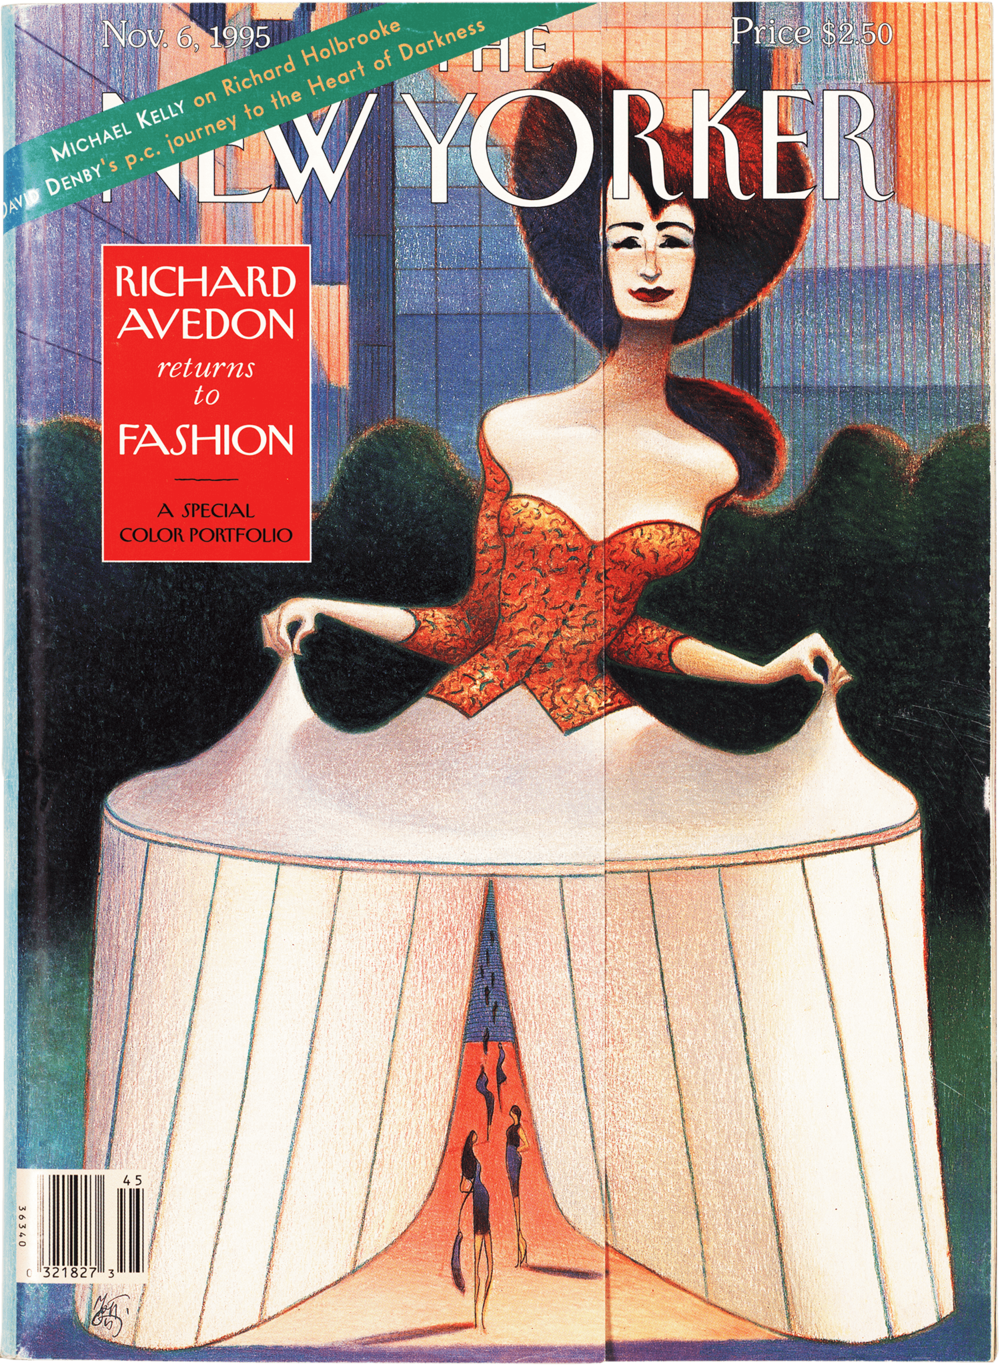 NewYorker-Nov6-1995-cover-resized.png